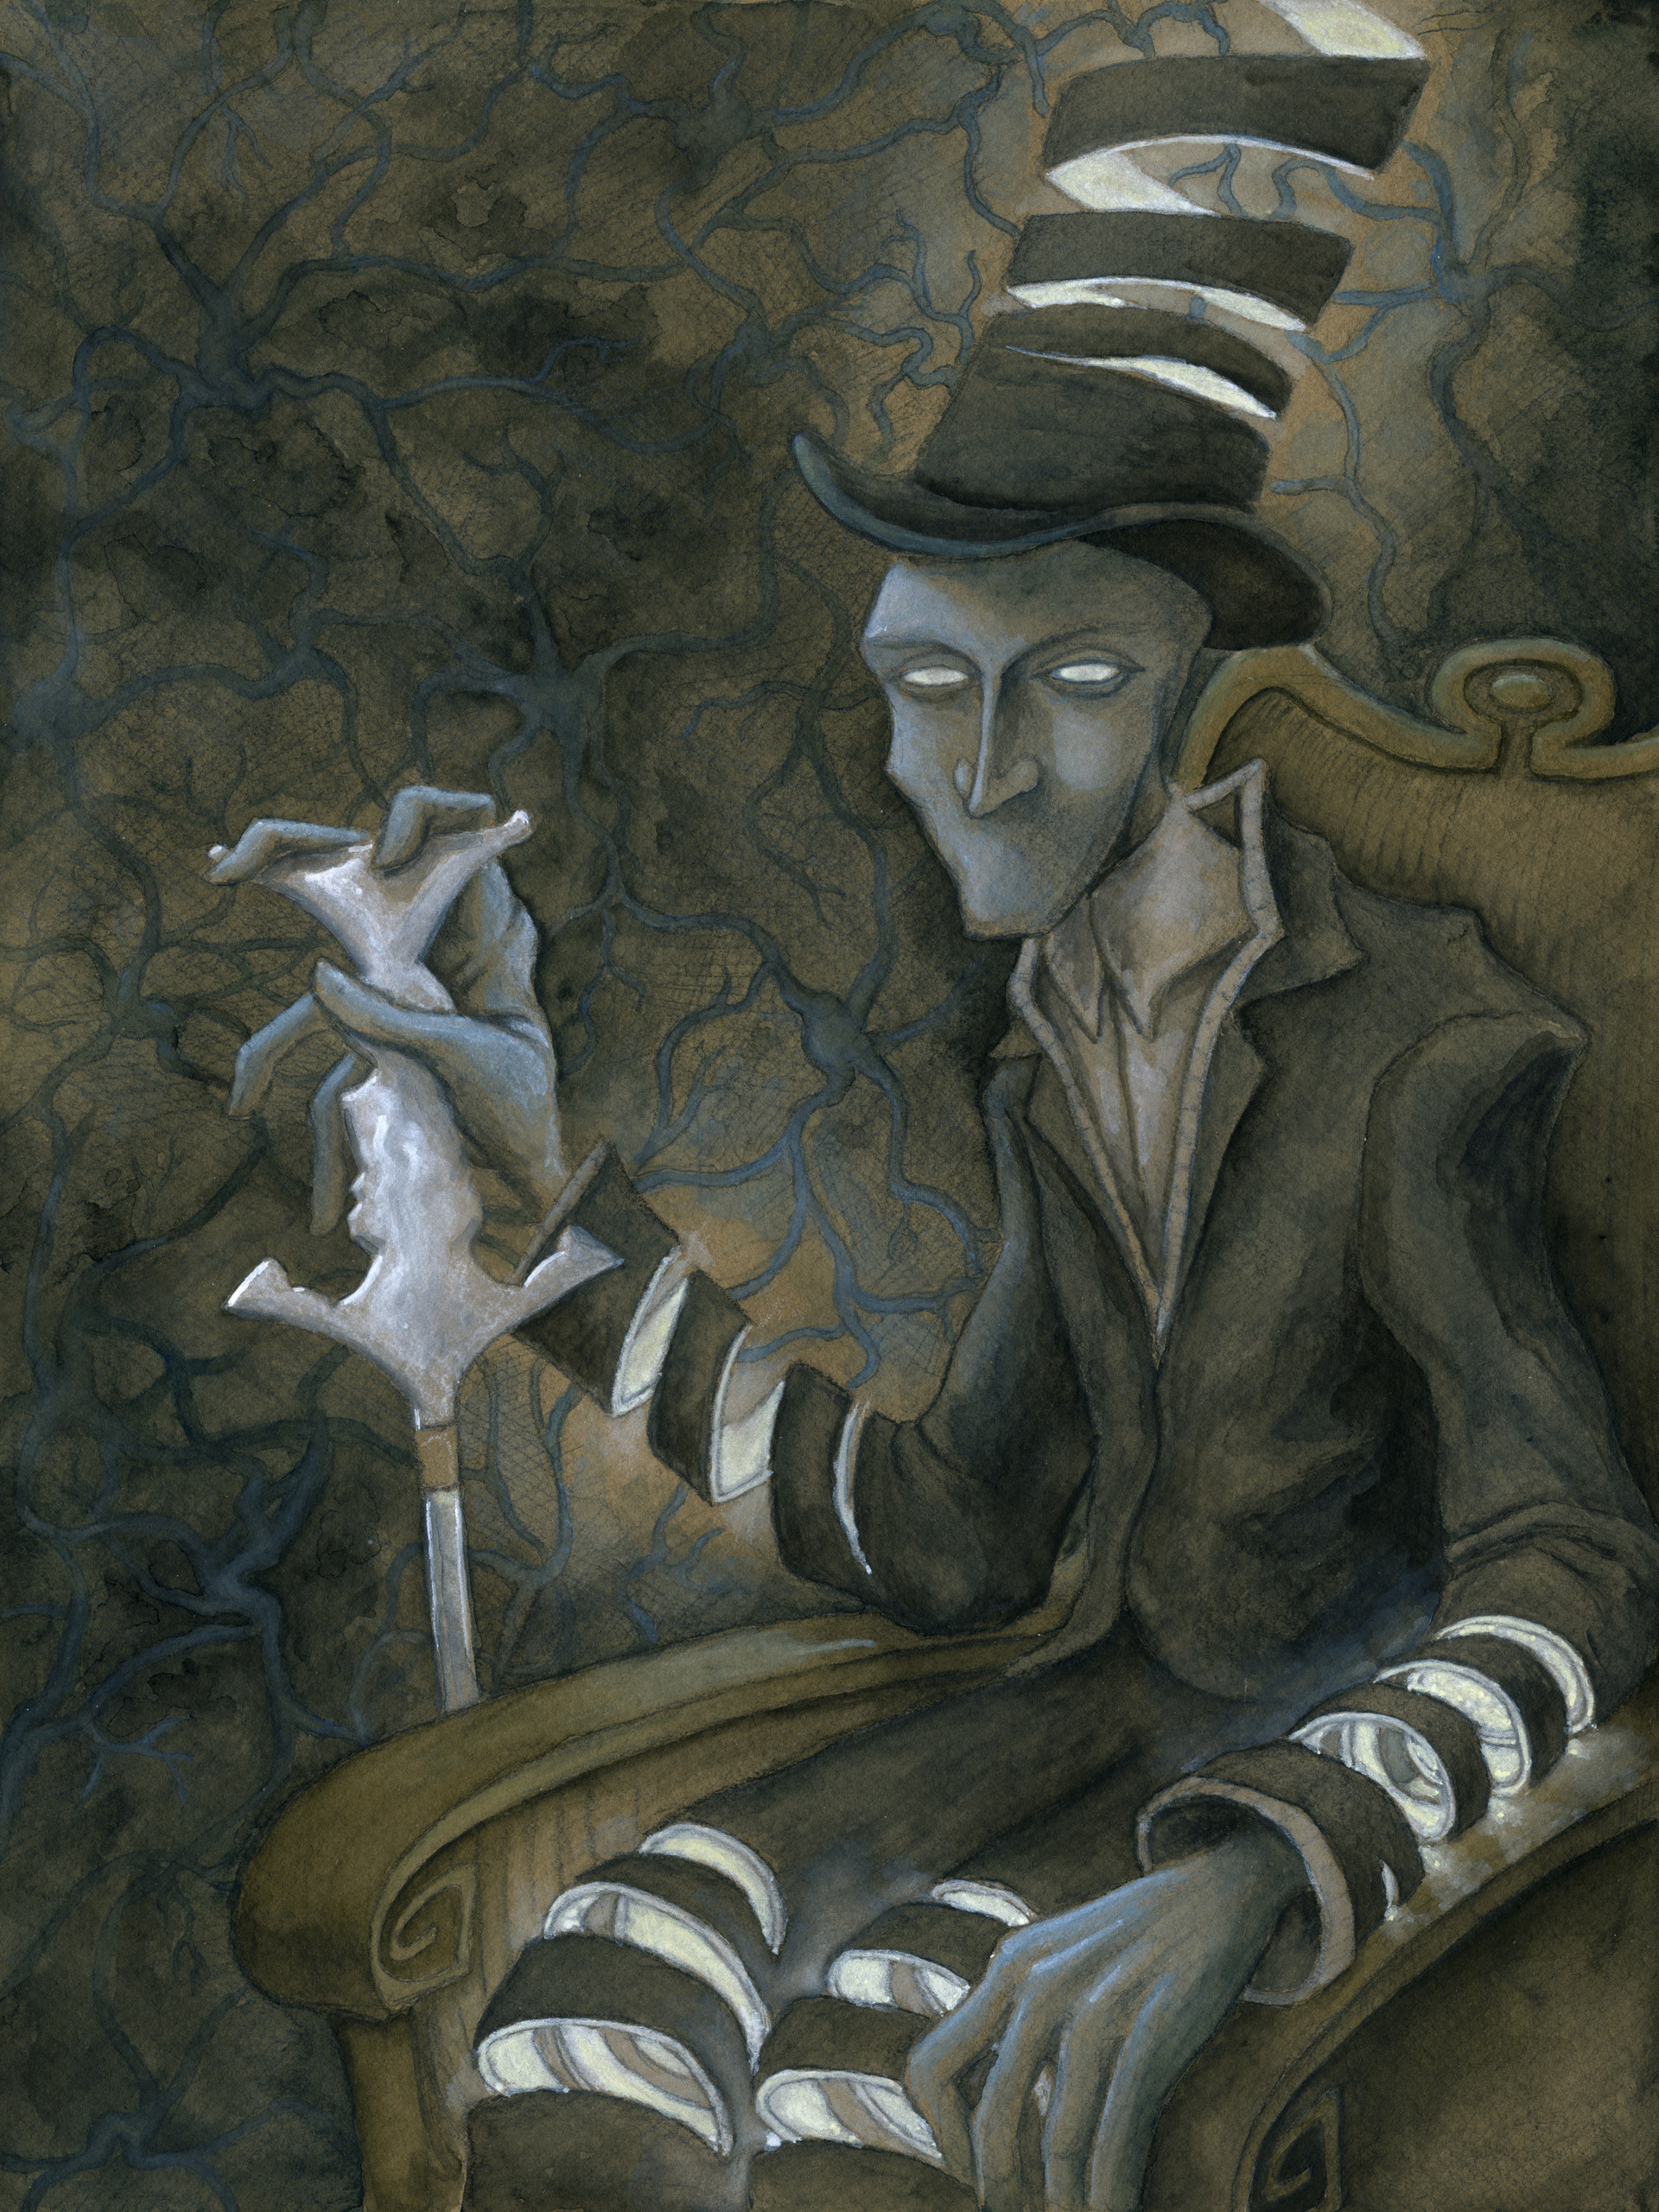 Patrick weck dr nicomachus graphite white charcoal and watercolor on toned paper